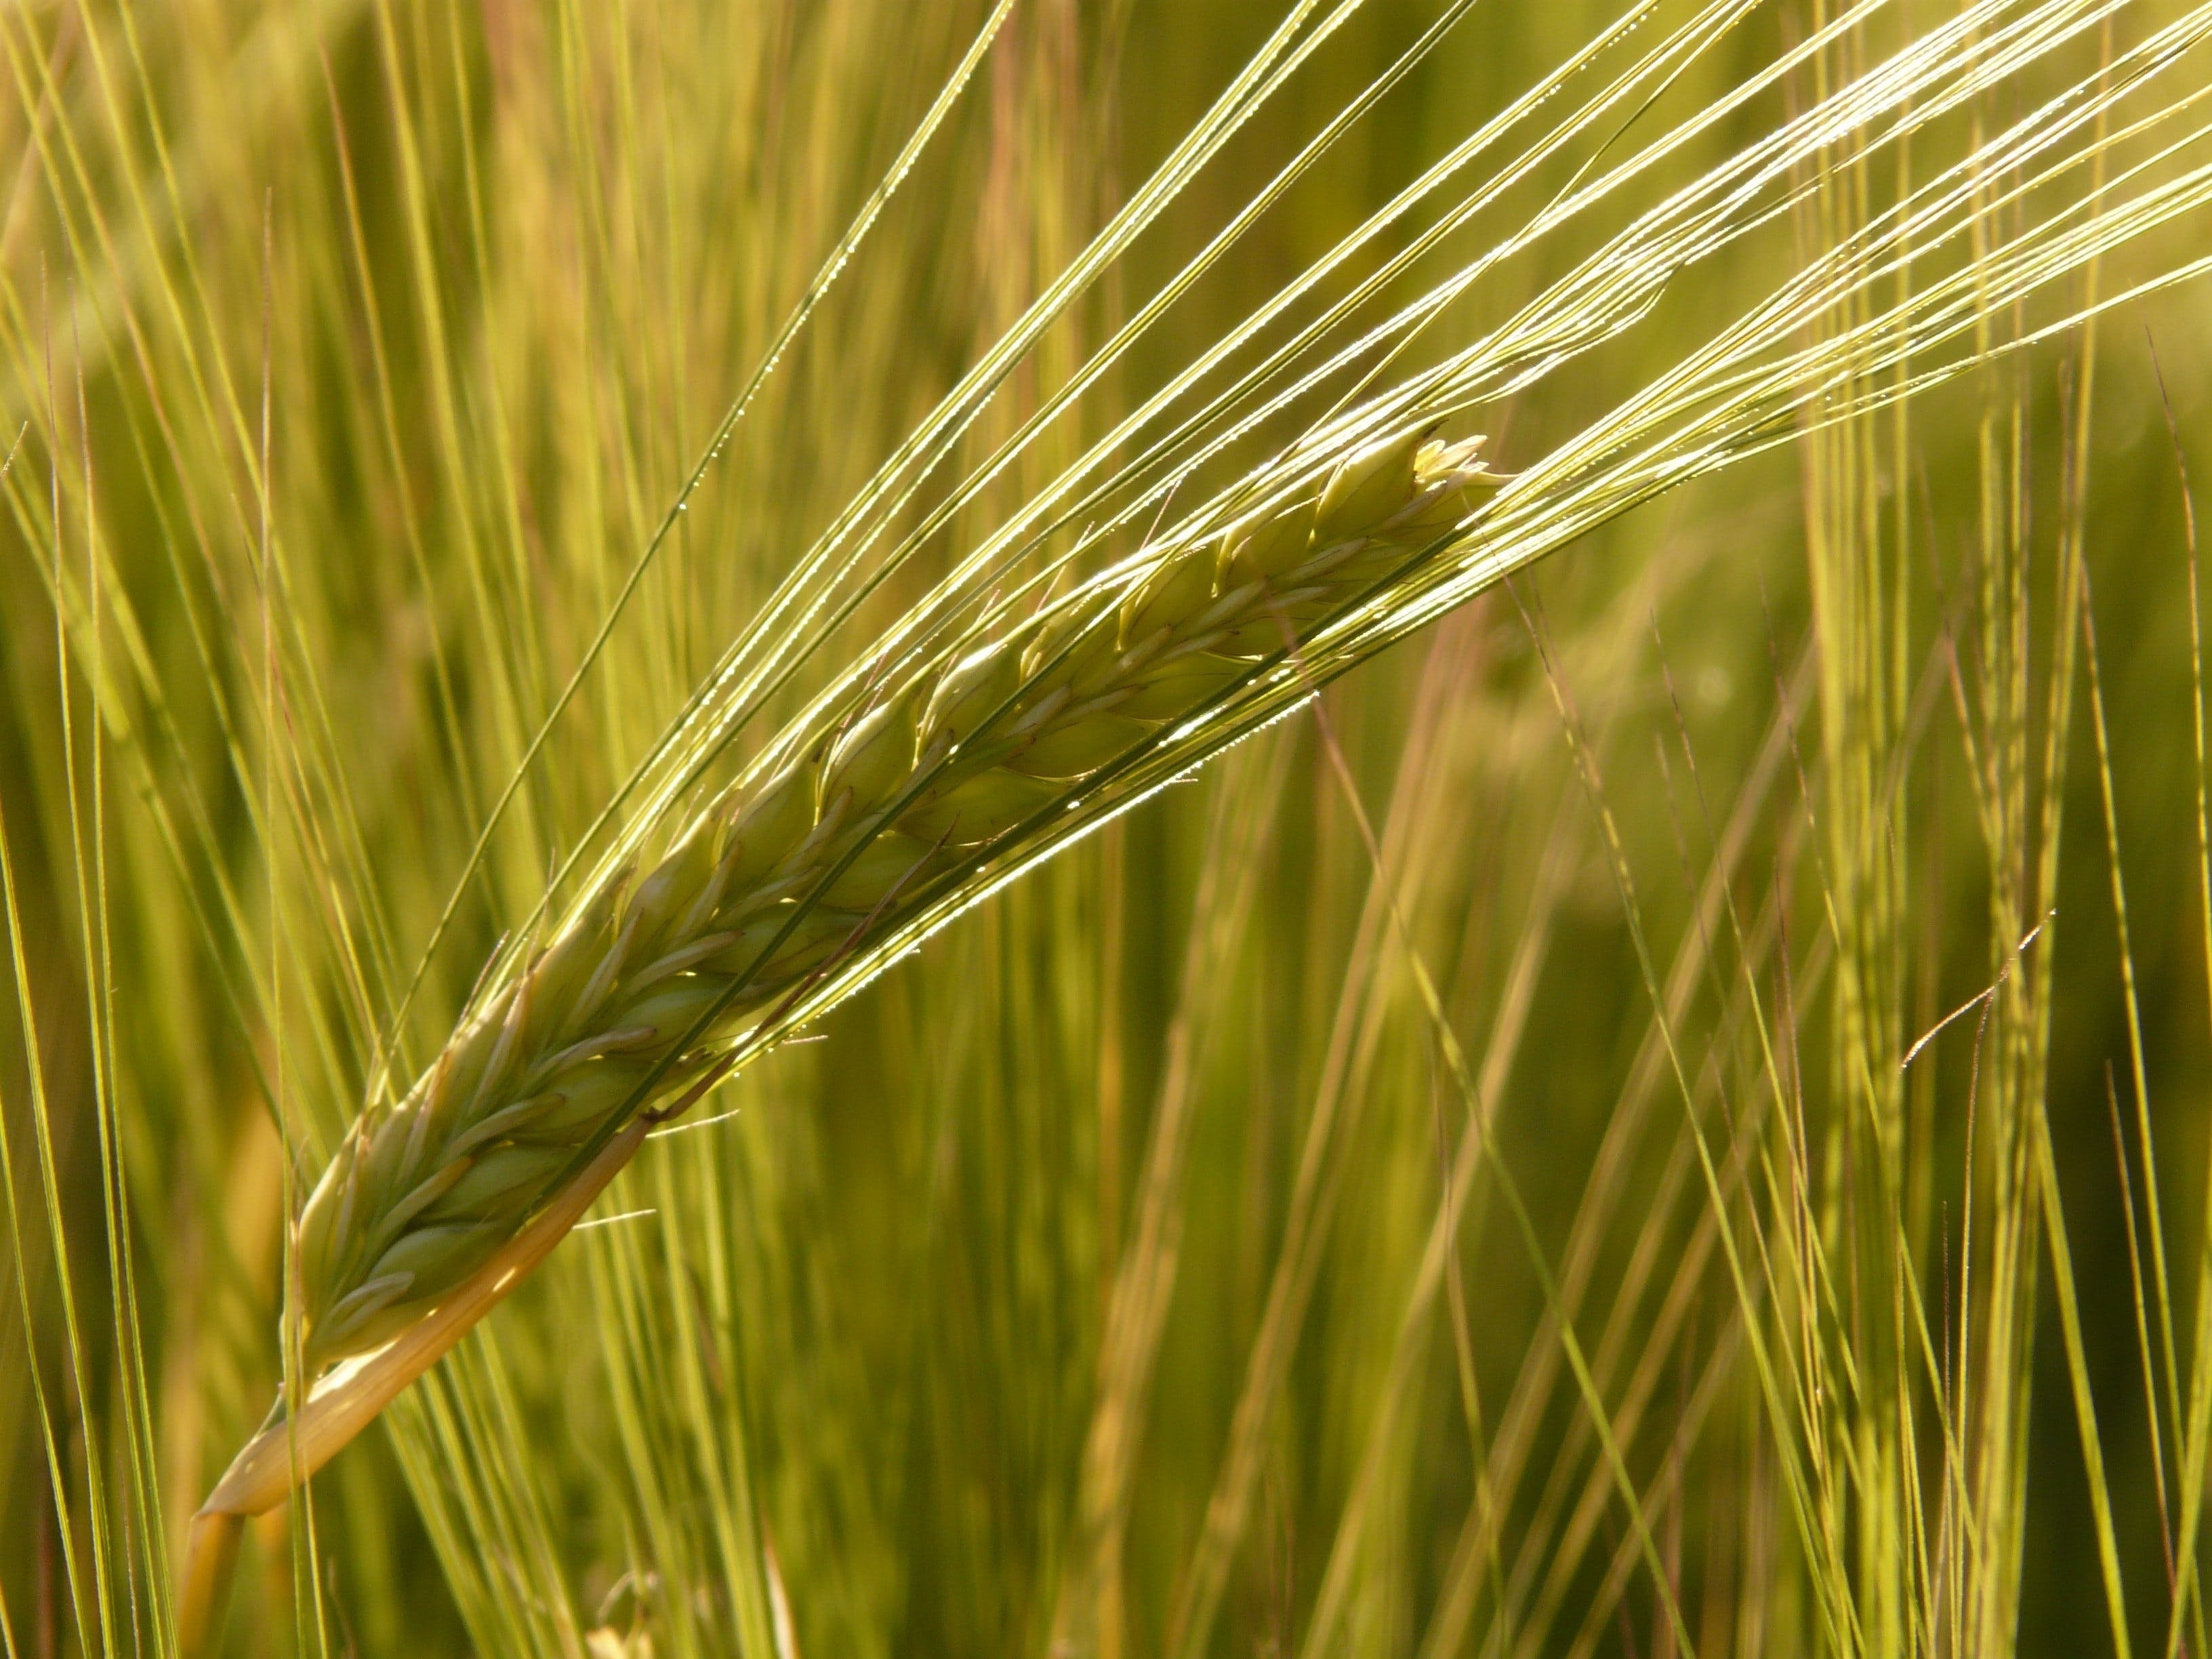 Shallow Focus of Wheat Grains